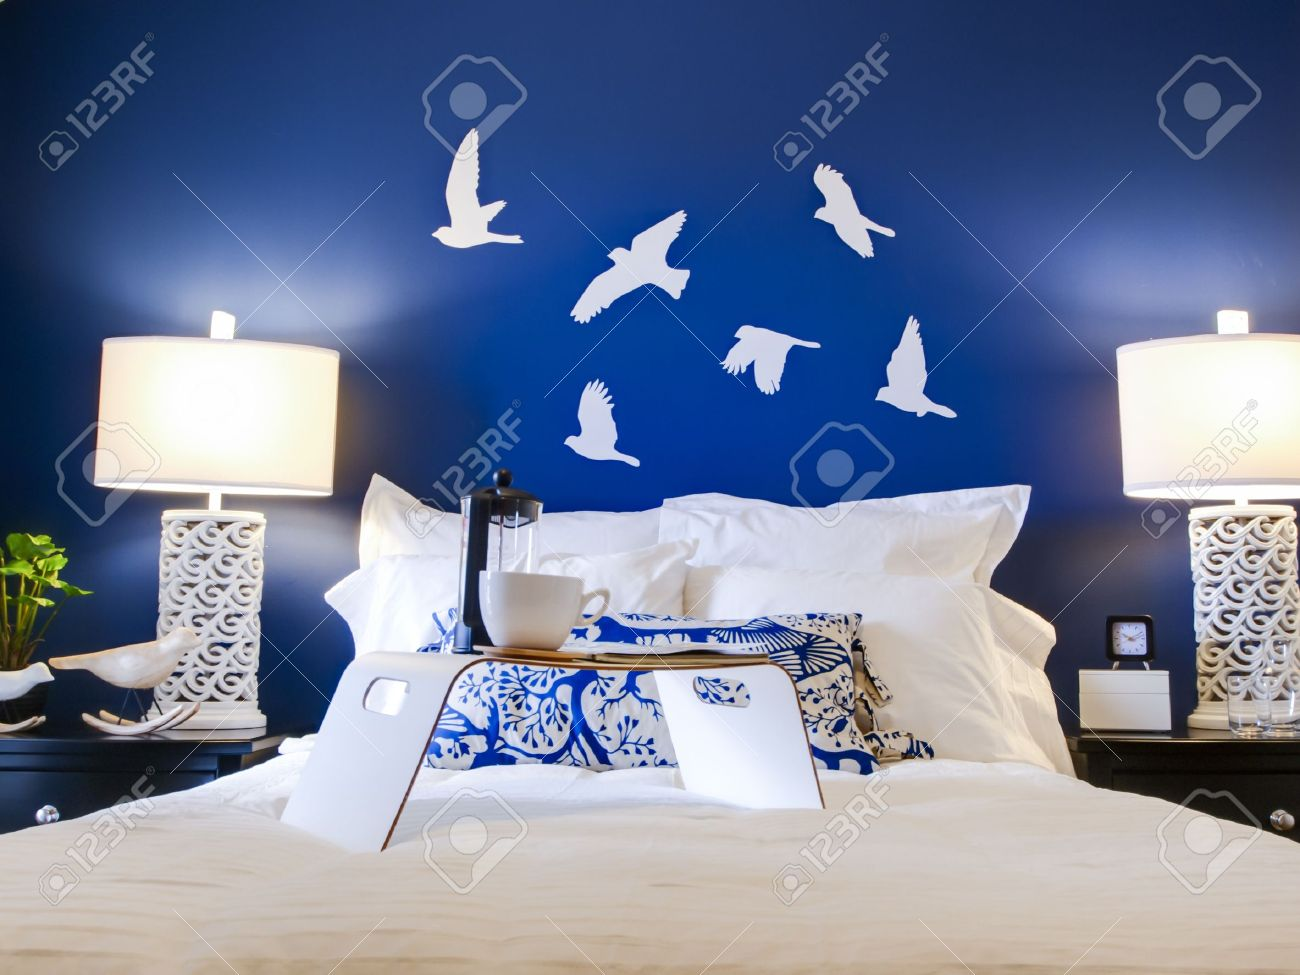 Blue modern master bedroom - Modern Master Bedroom With Blue Wall And White Linens Stock Photo 15079362